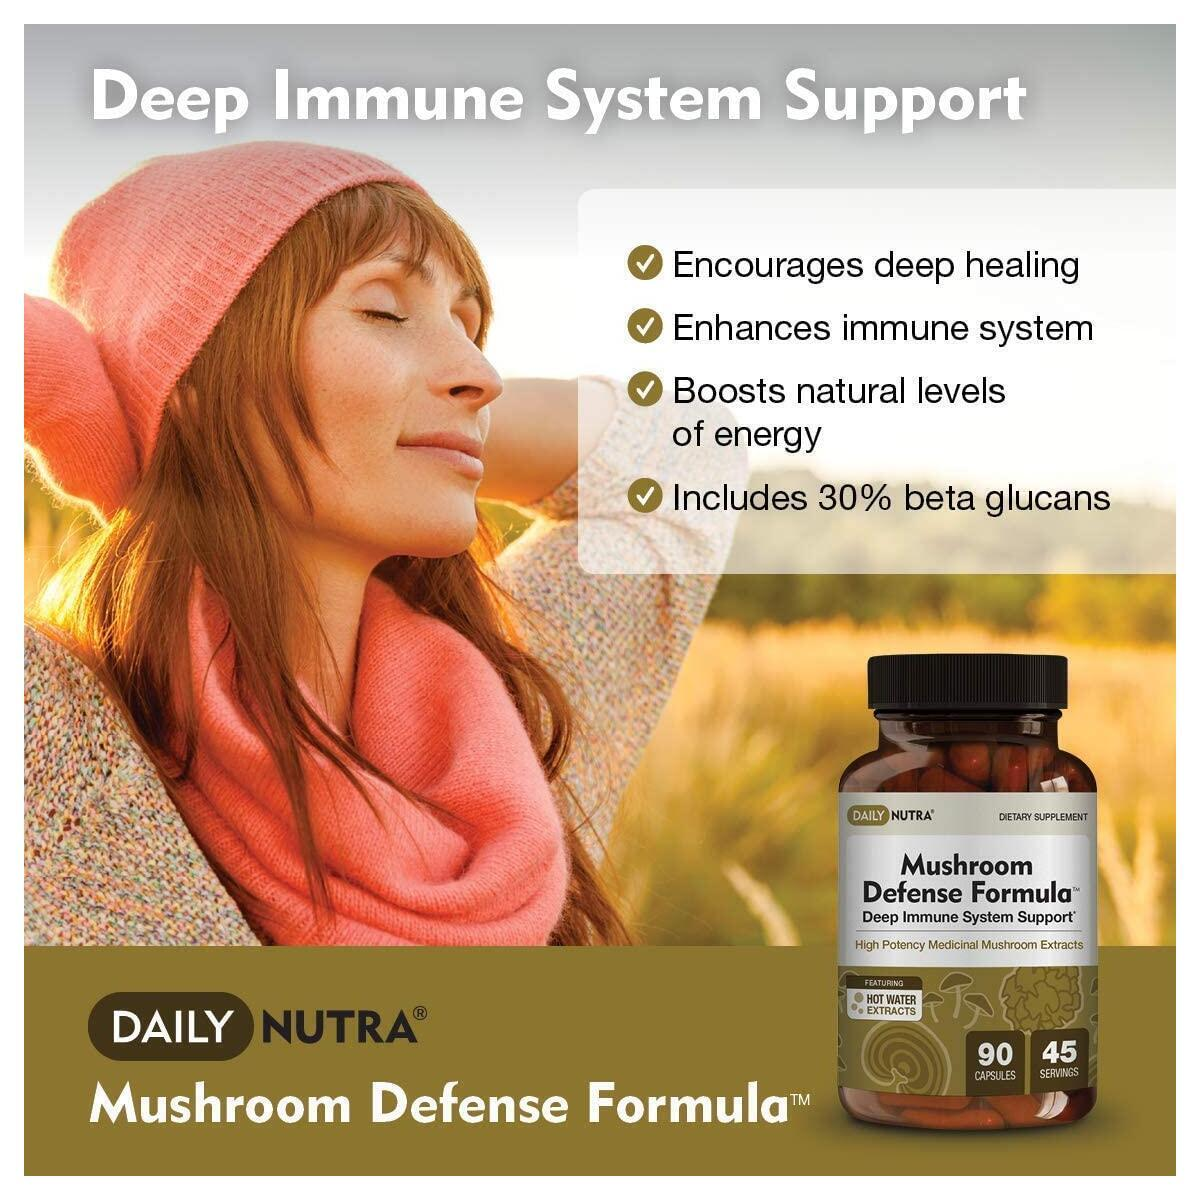 Mushroom Defense Formula by DailyNutra - Immune Support Supplement | Organic Mushrooms, Hot Water Extracted - Reishi, Chaga, Maitake, Shiitake & Turkey Tail (90 Capsules)